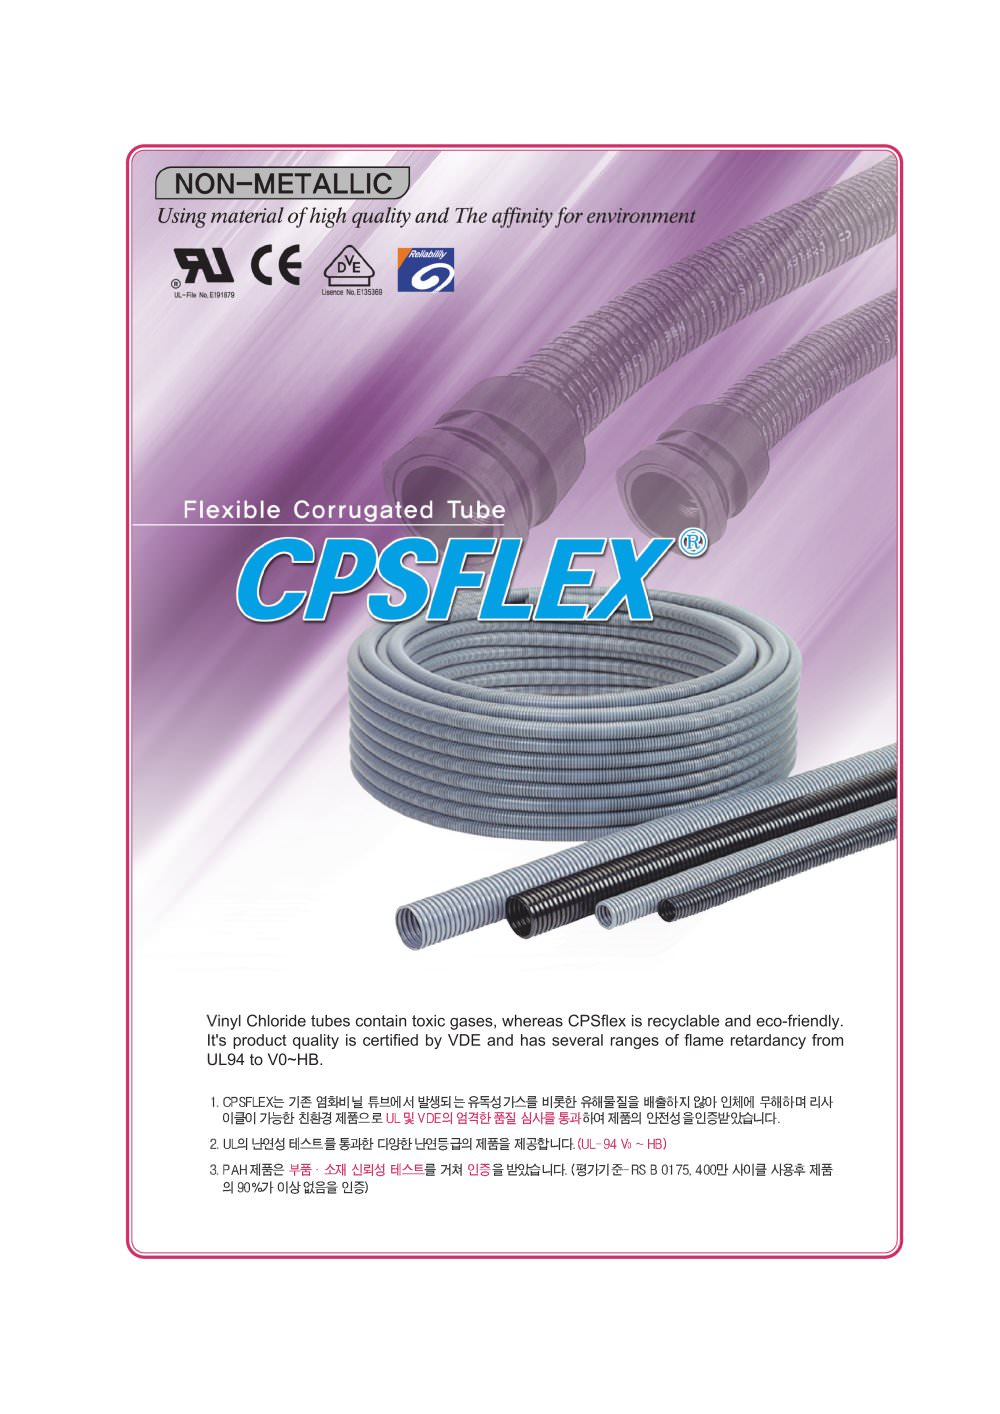 Conduits And Cable Grand Cps Flex Fix Flexible Wiring Conduit 1 66 Pages